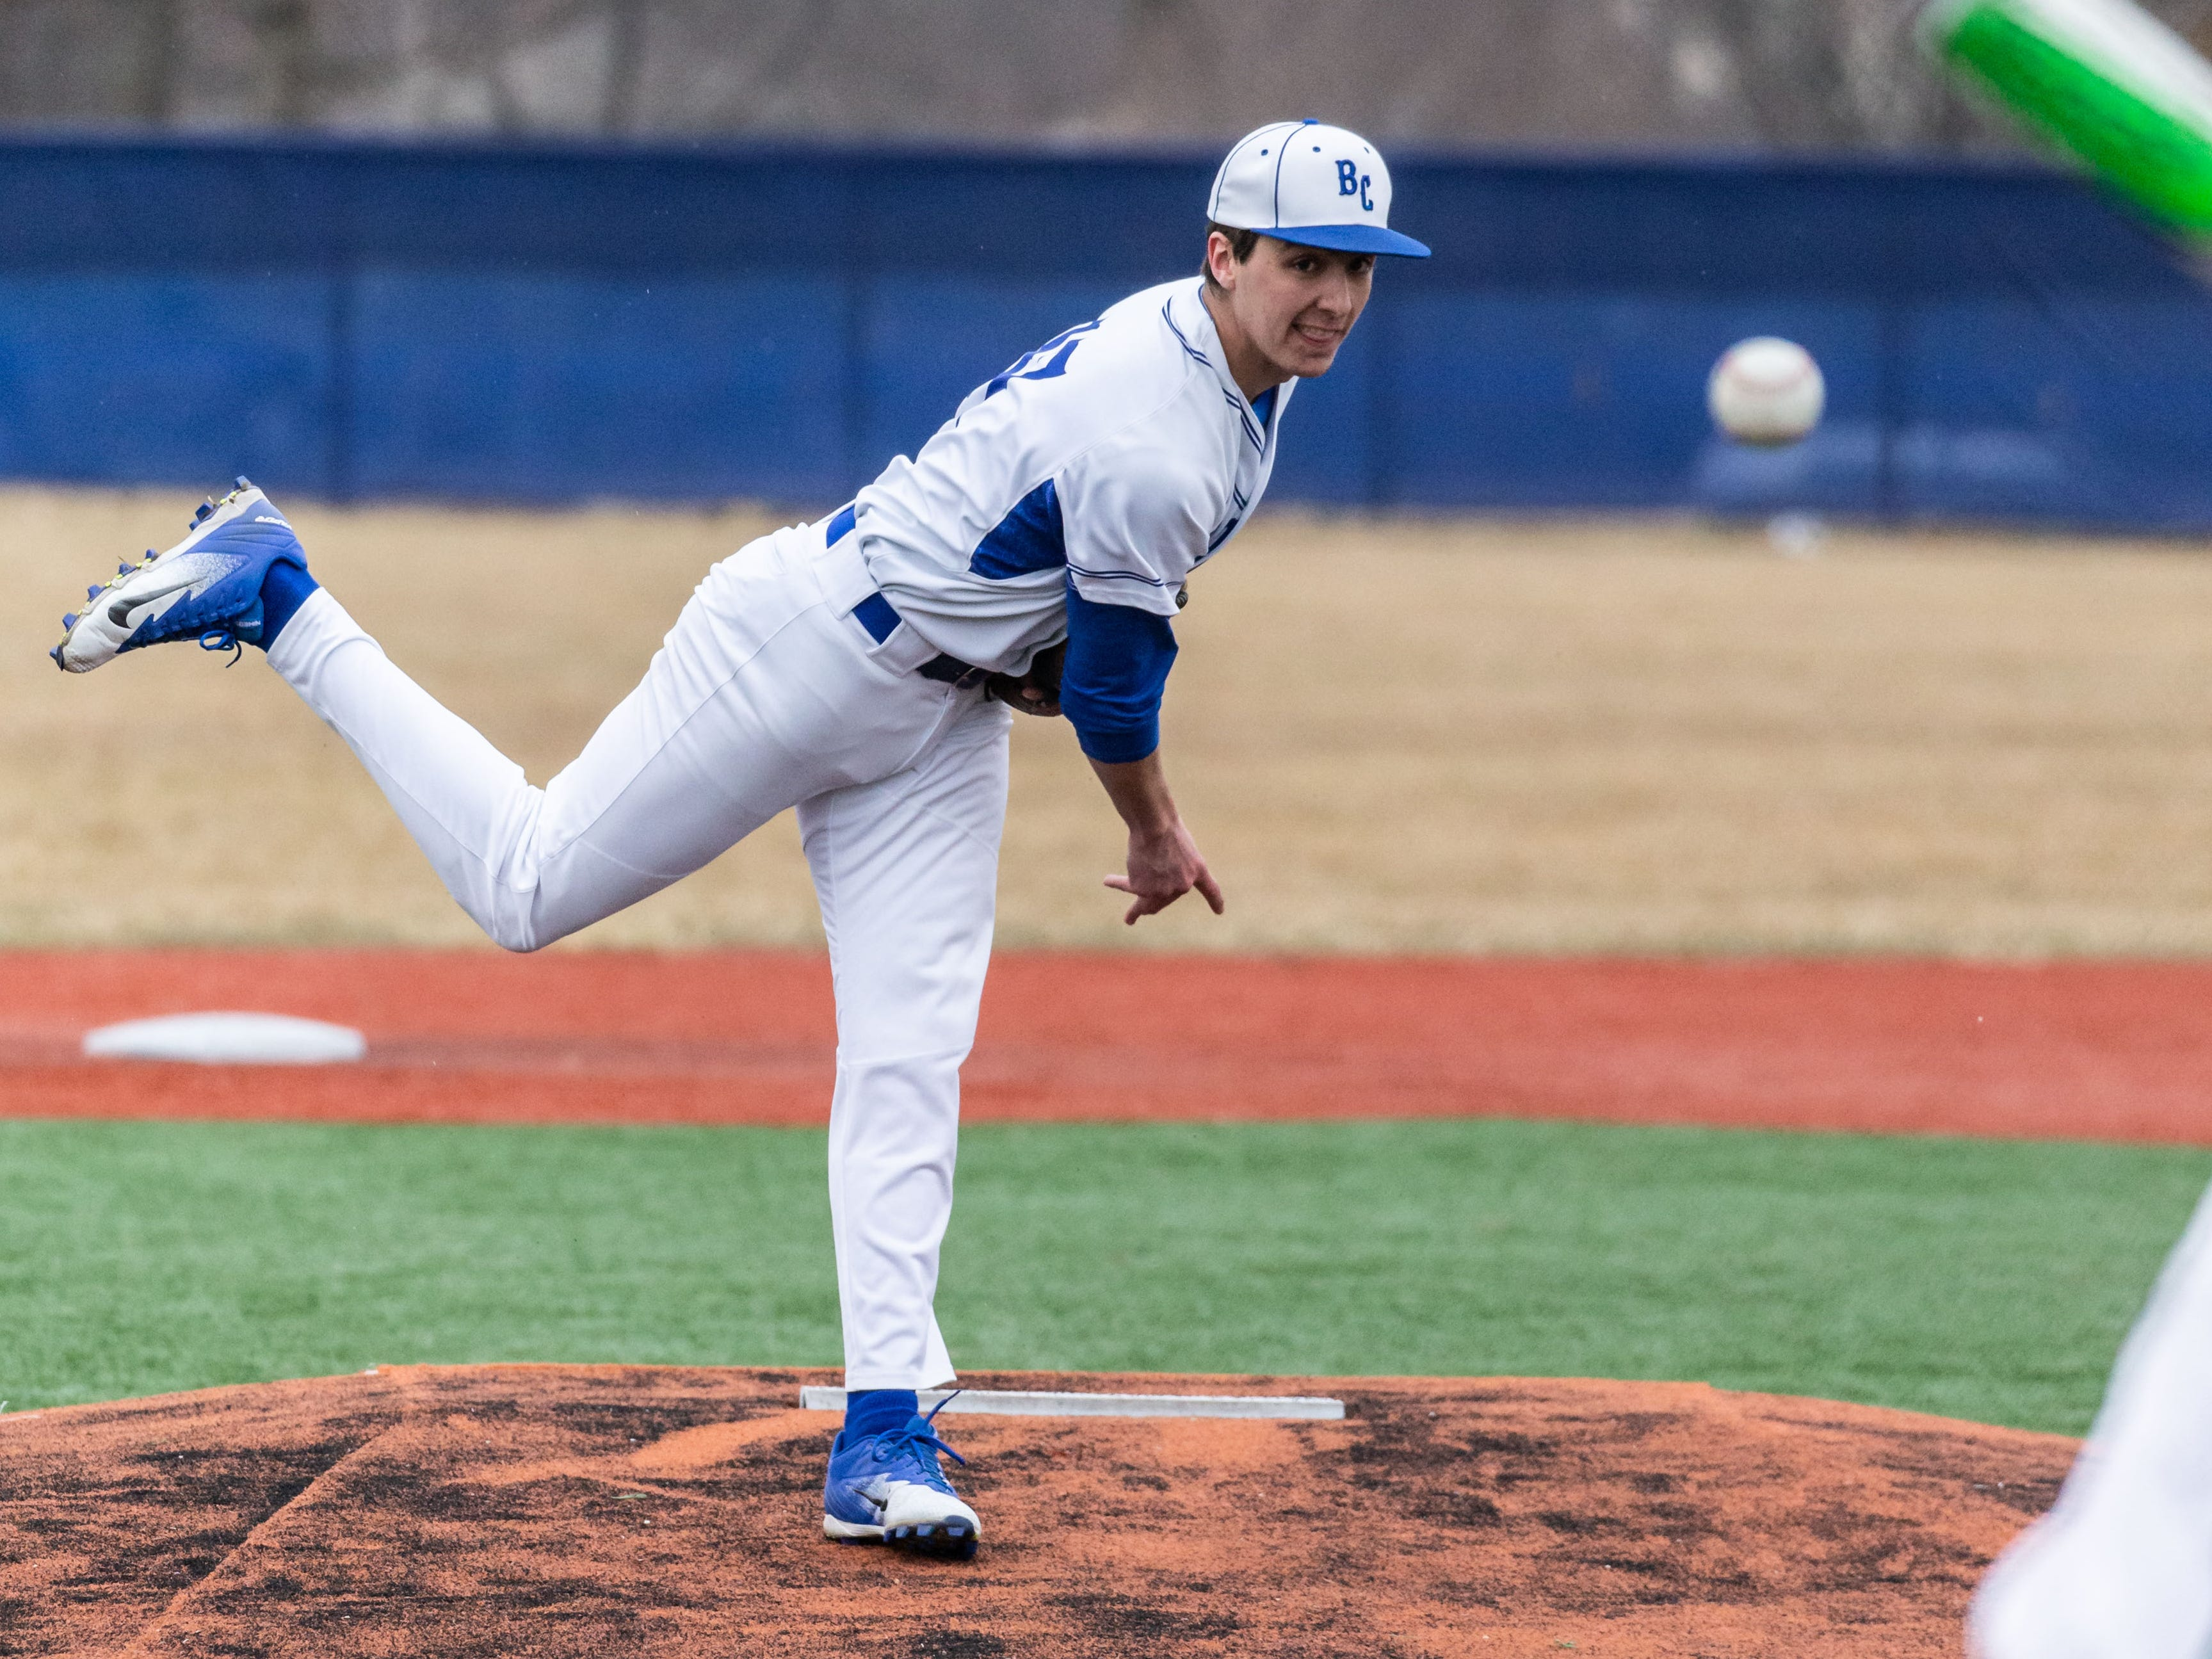 Brookfield Central's Colin Szymborski (17) delivers a pitch during the game at home against Wauwatosa West on Thursday, April 4, 2019.